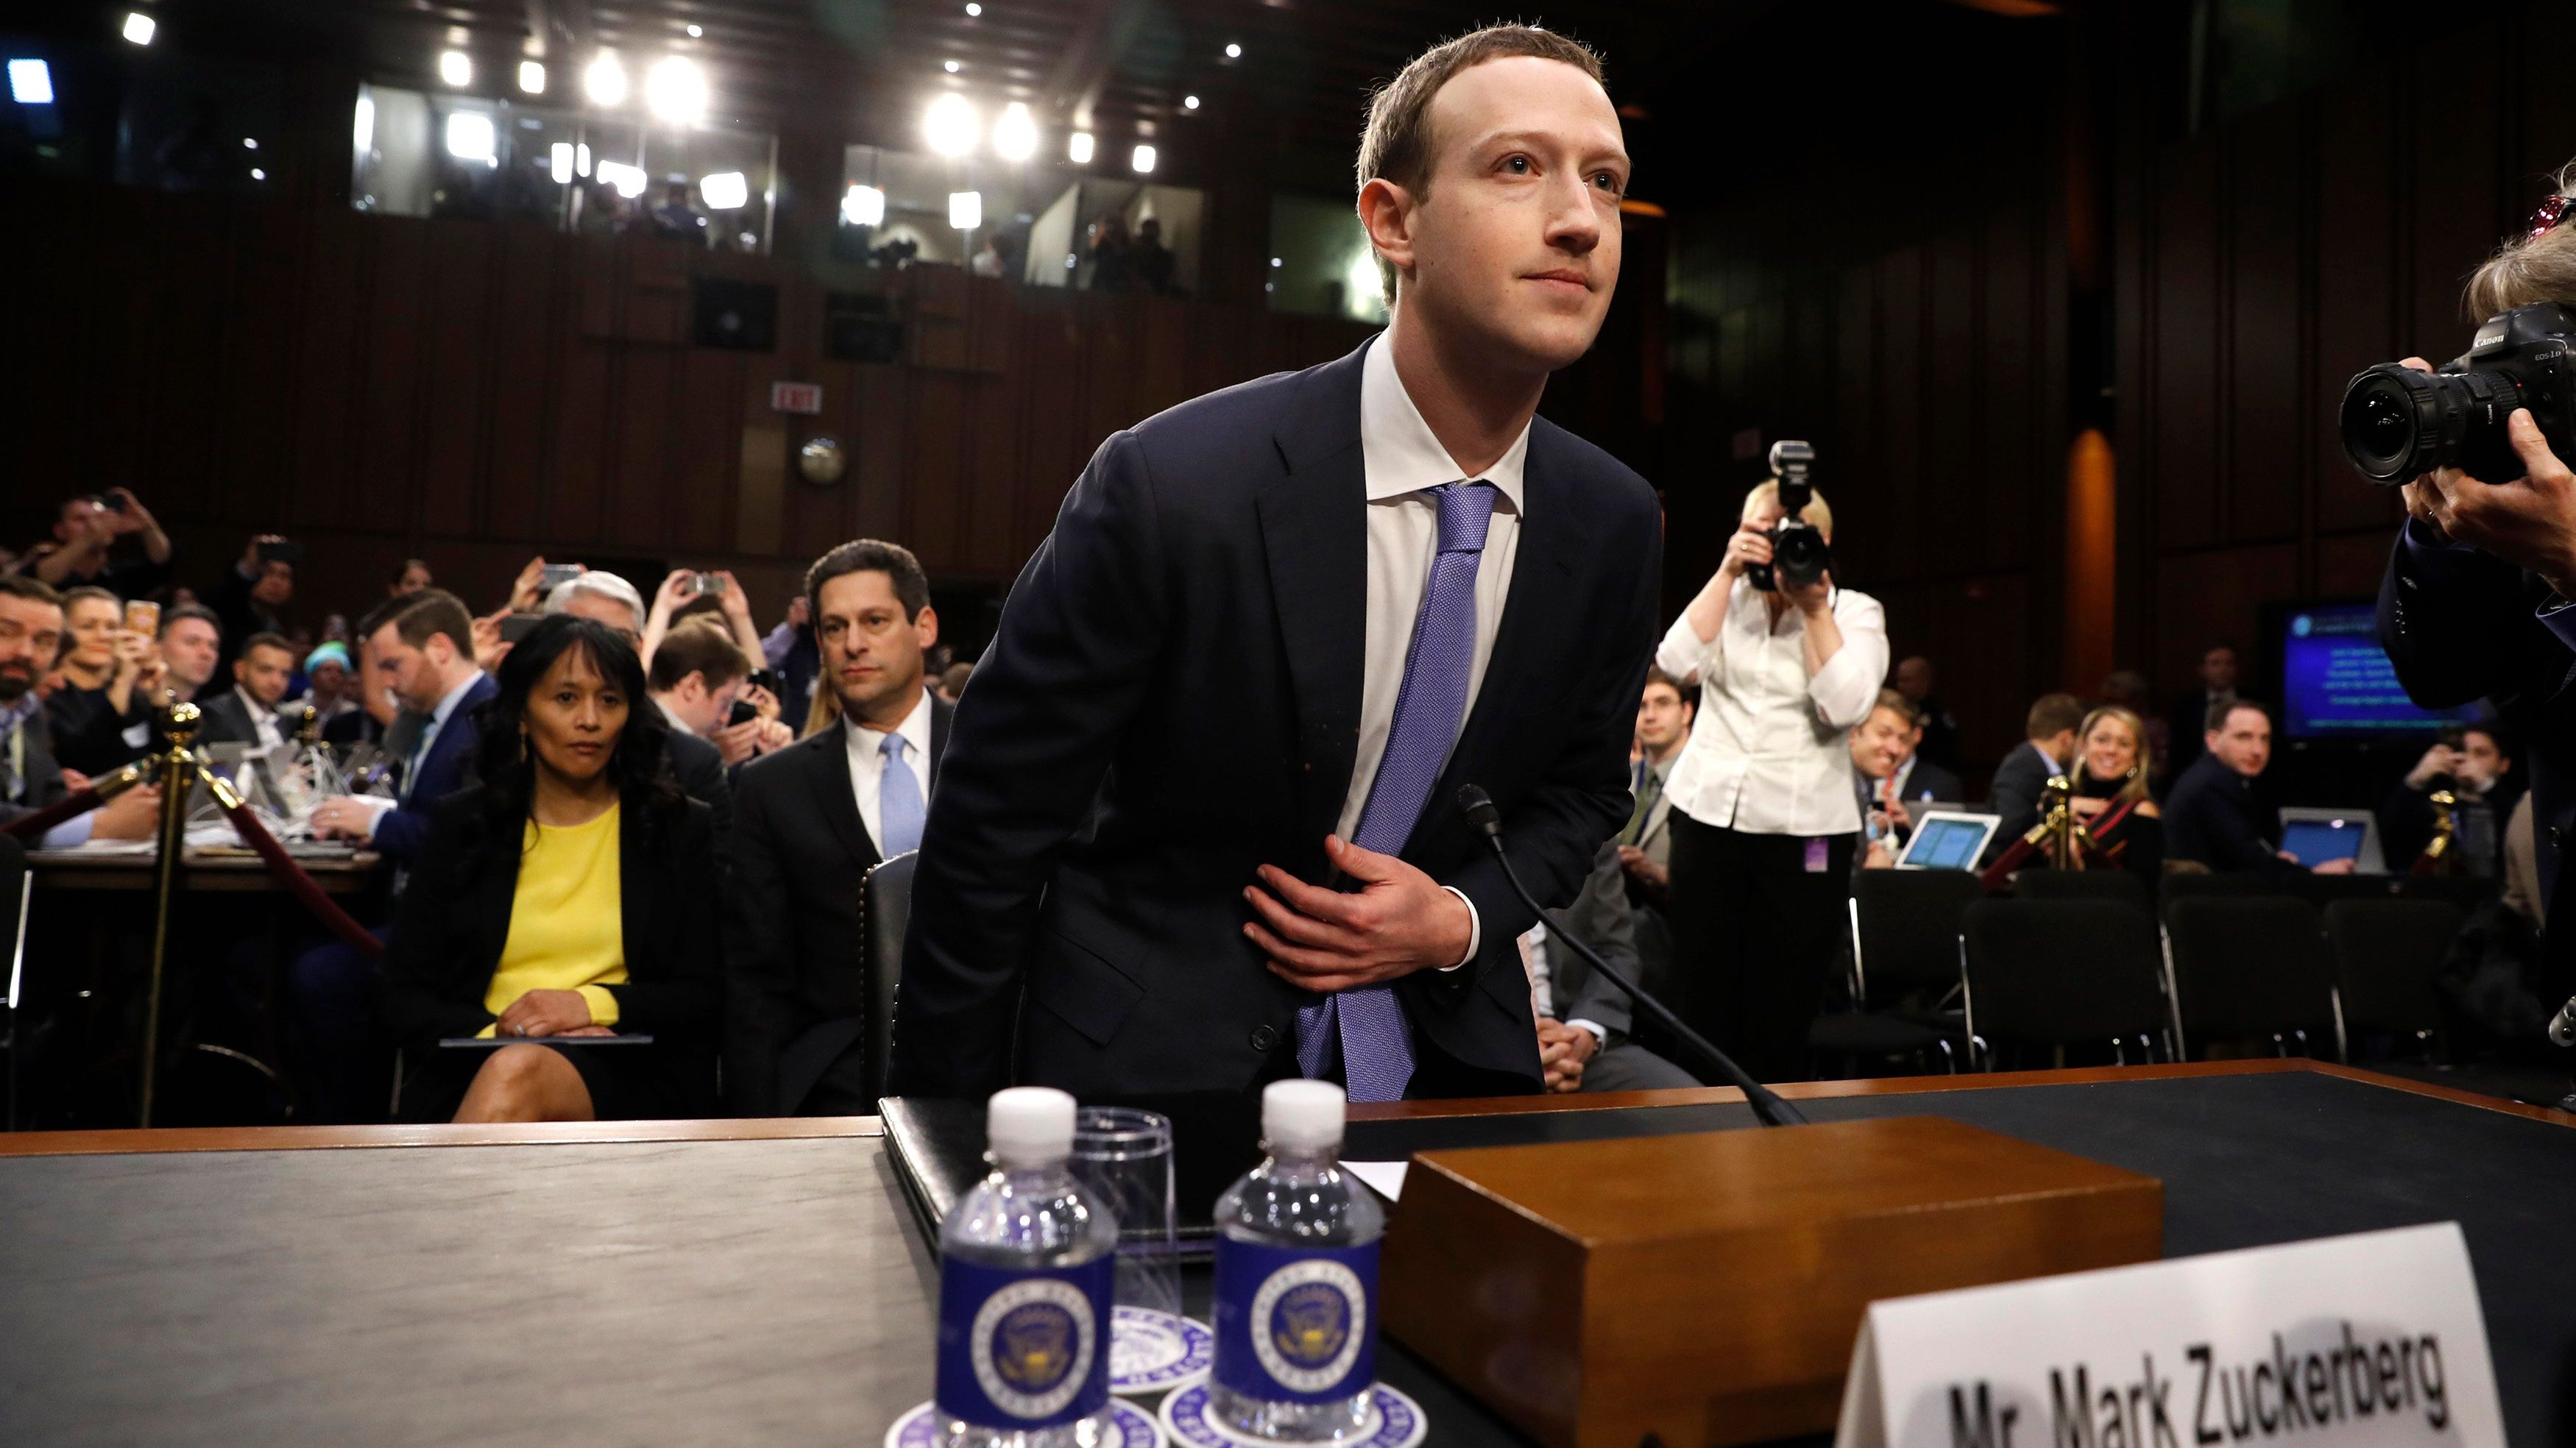 Facebook CEO Mark Zuckerberg arrives to testify before a Senate Judiciary and Commerce Committees joint hearing regarding the company's use and protection of user data, on Capitol Hill in Washington, U.S., April 10, 2018. REUTERS/Aaron P. Bernstein - HP1EE4A1G3550